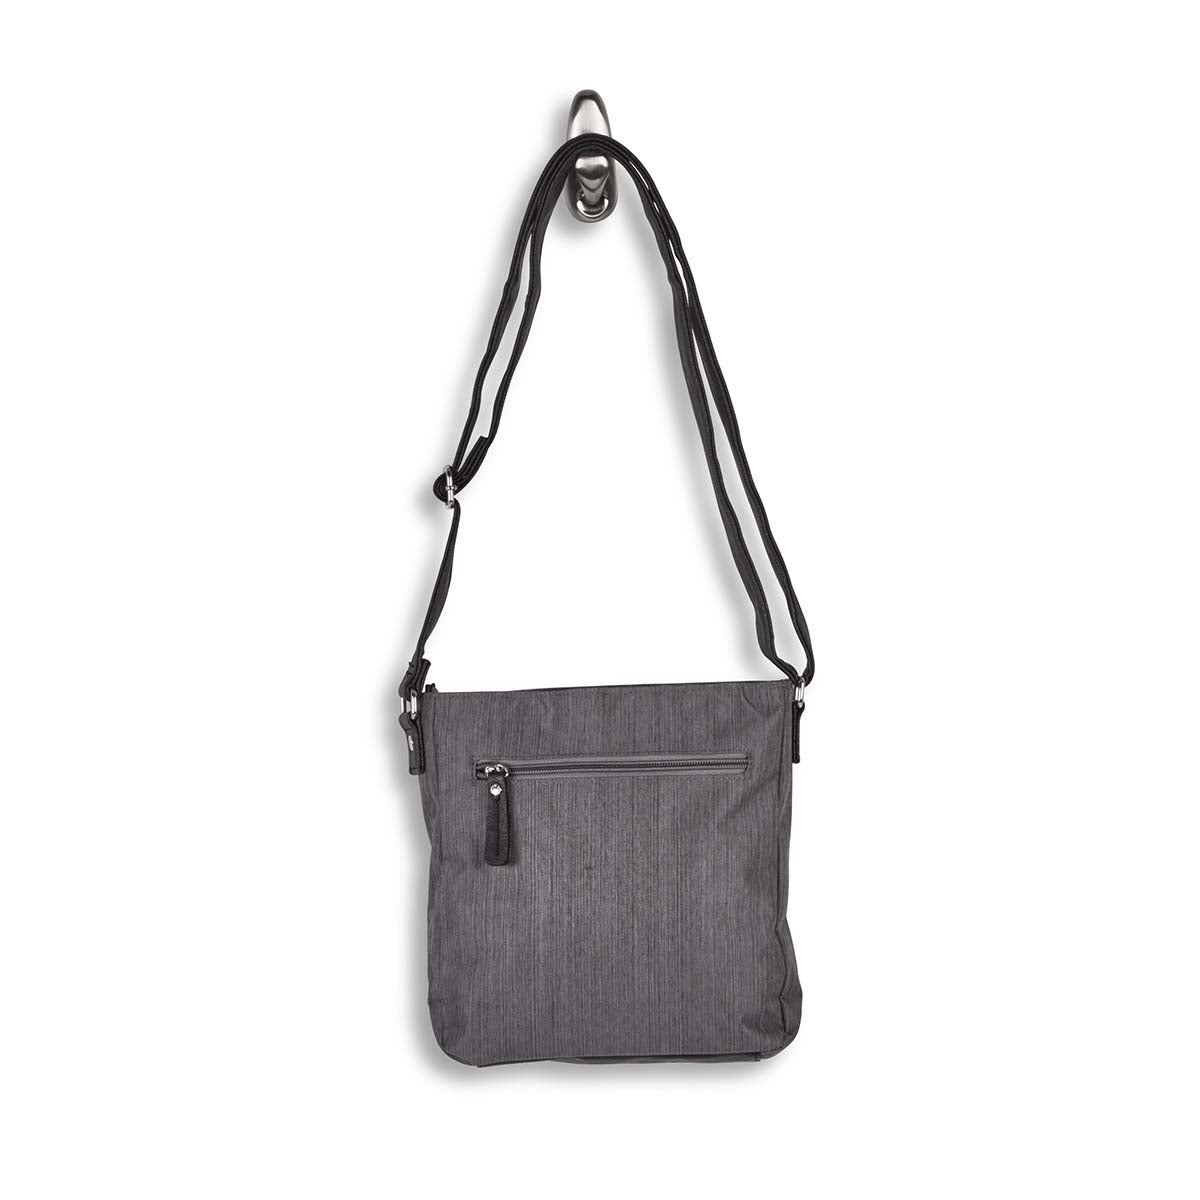 Lds grey 2 front pocket crossbody